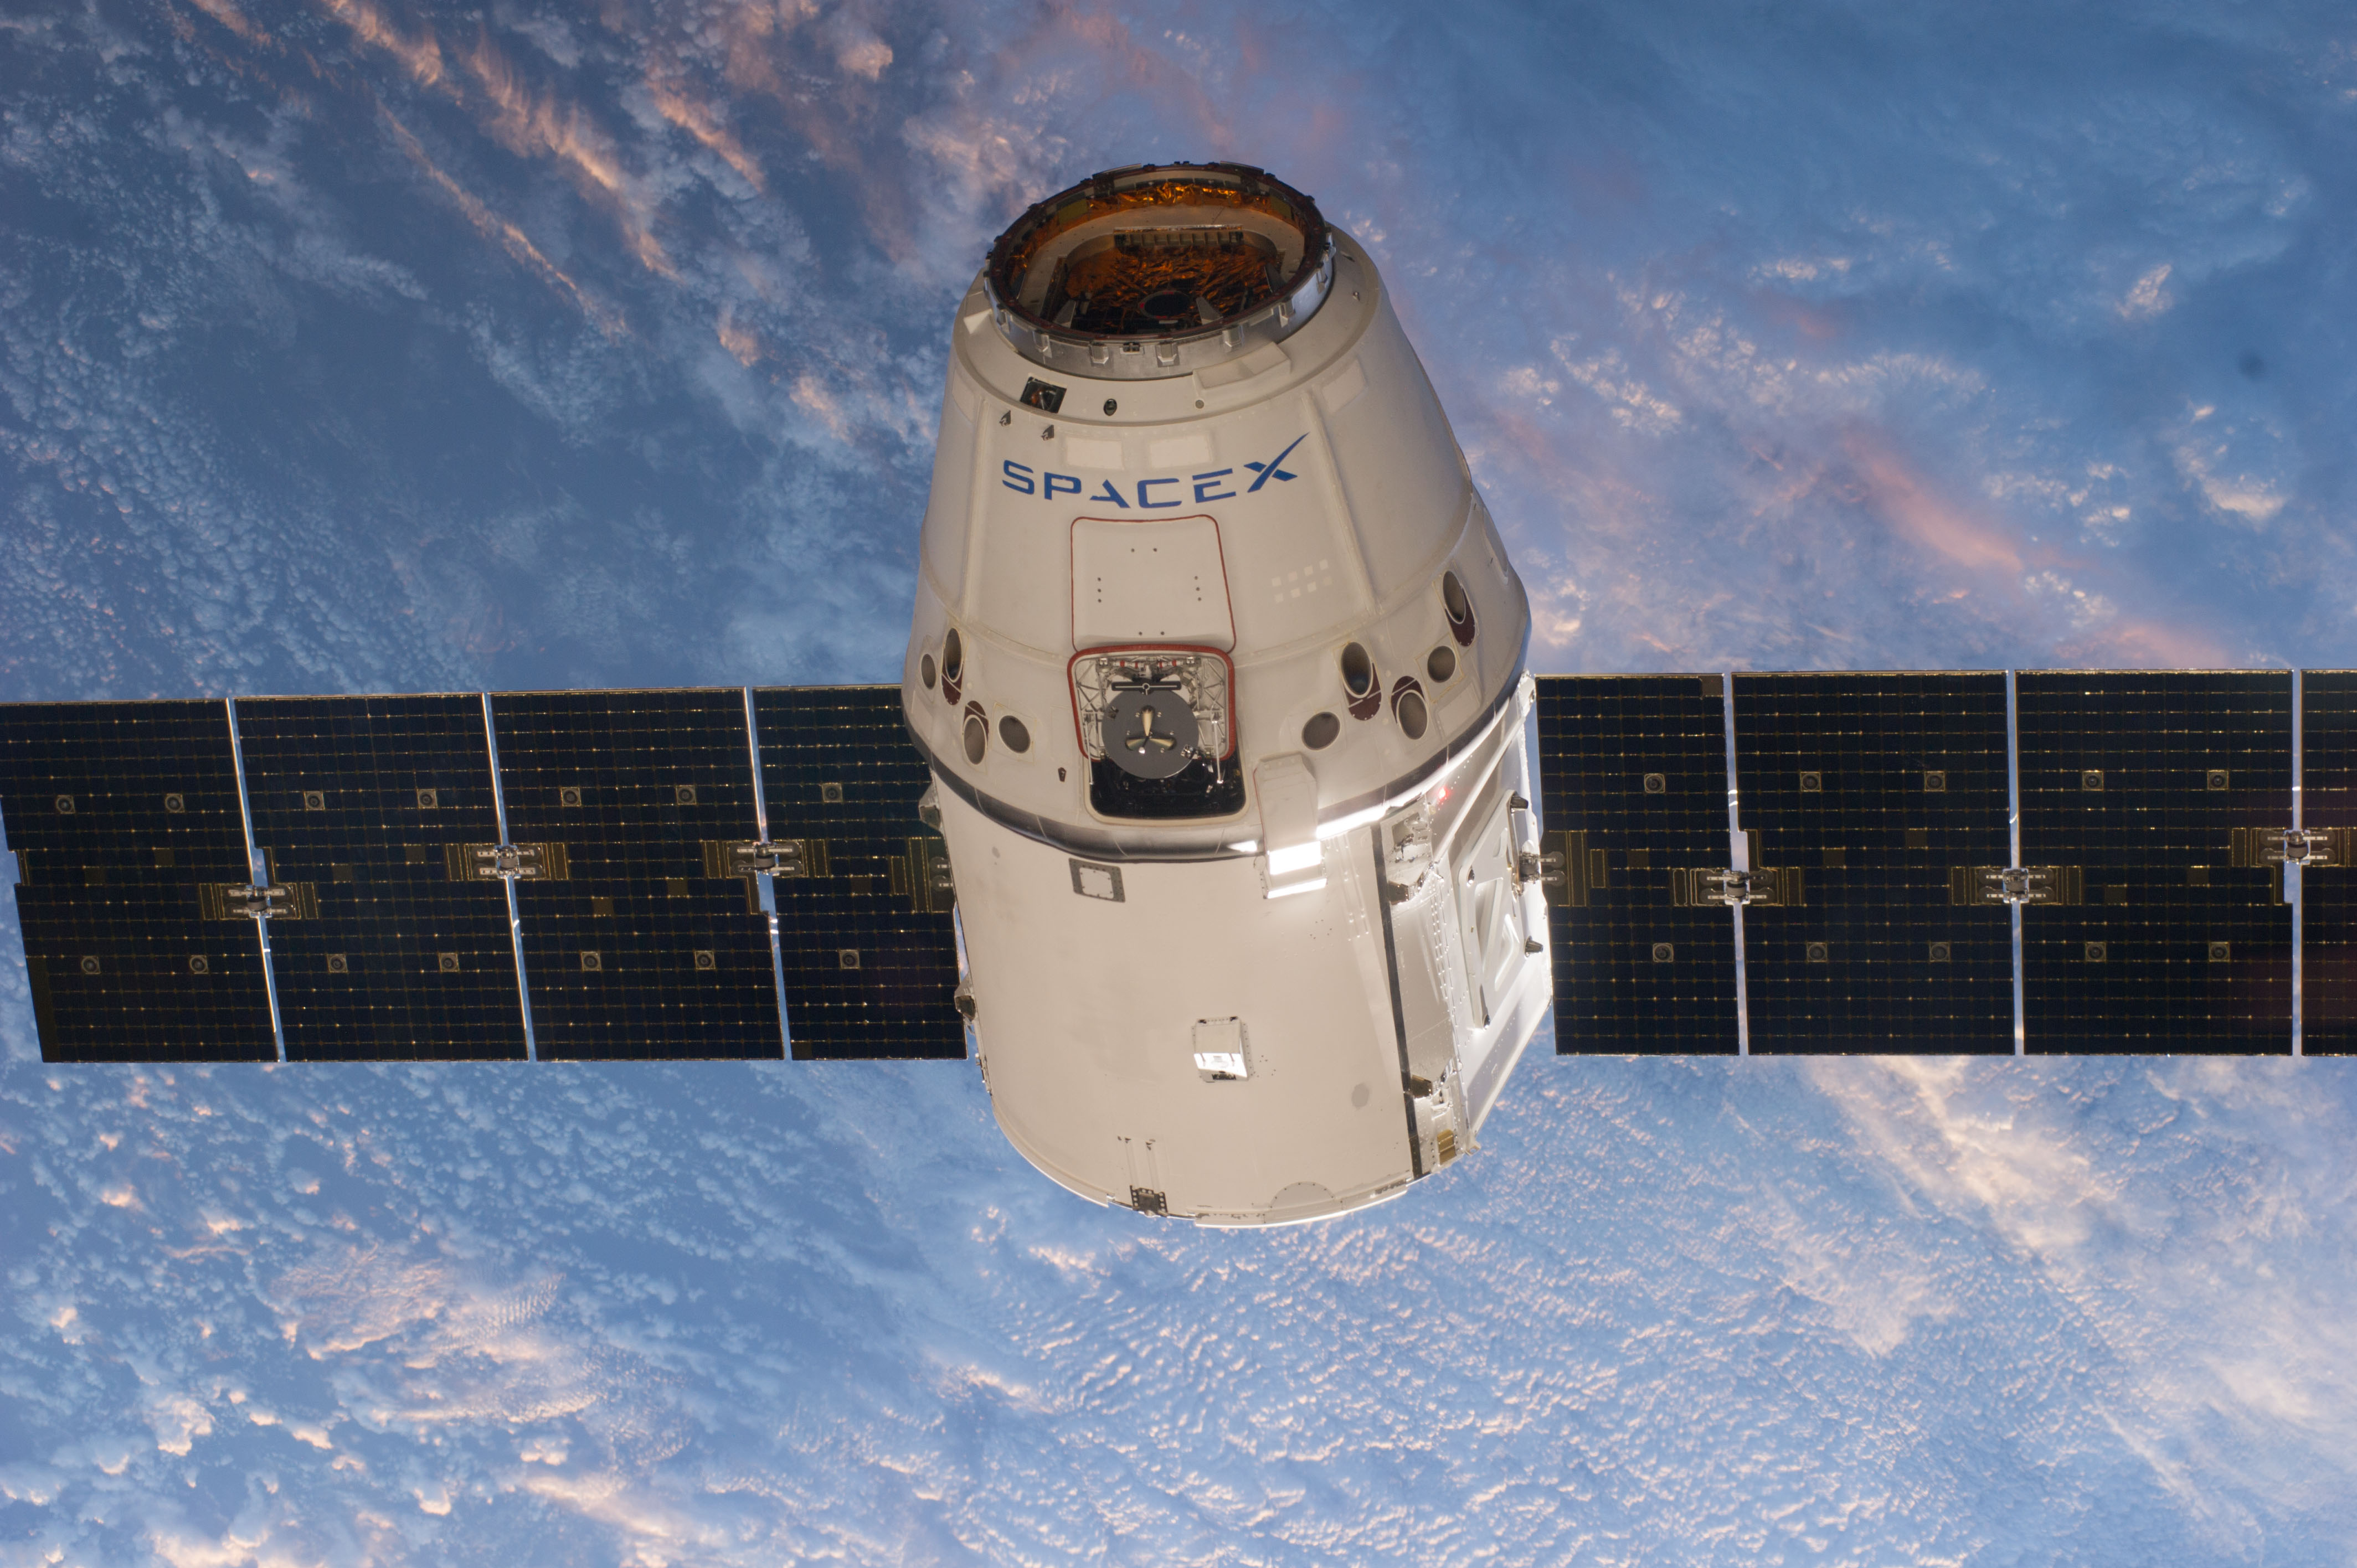 commercial resupply spacex dragon cargo capsule